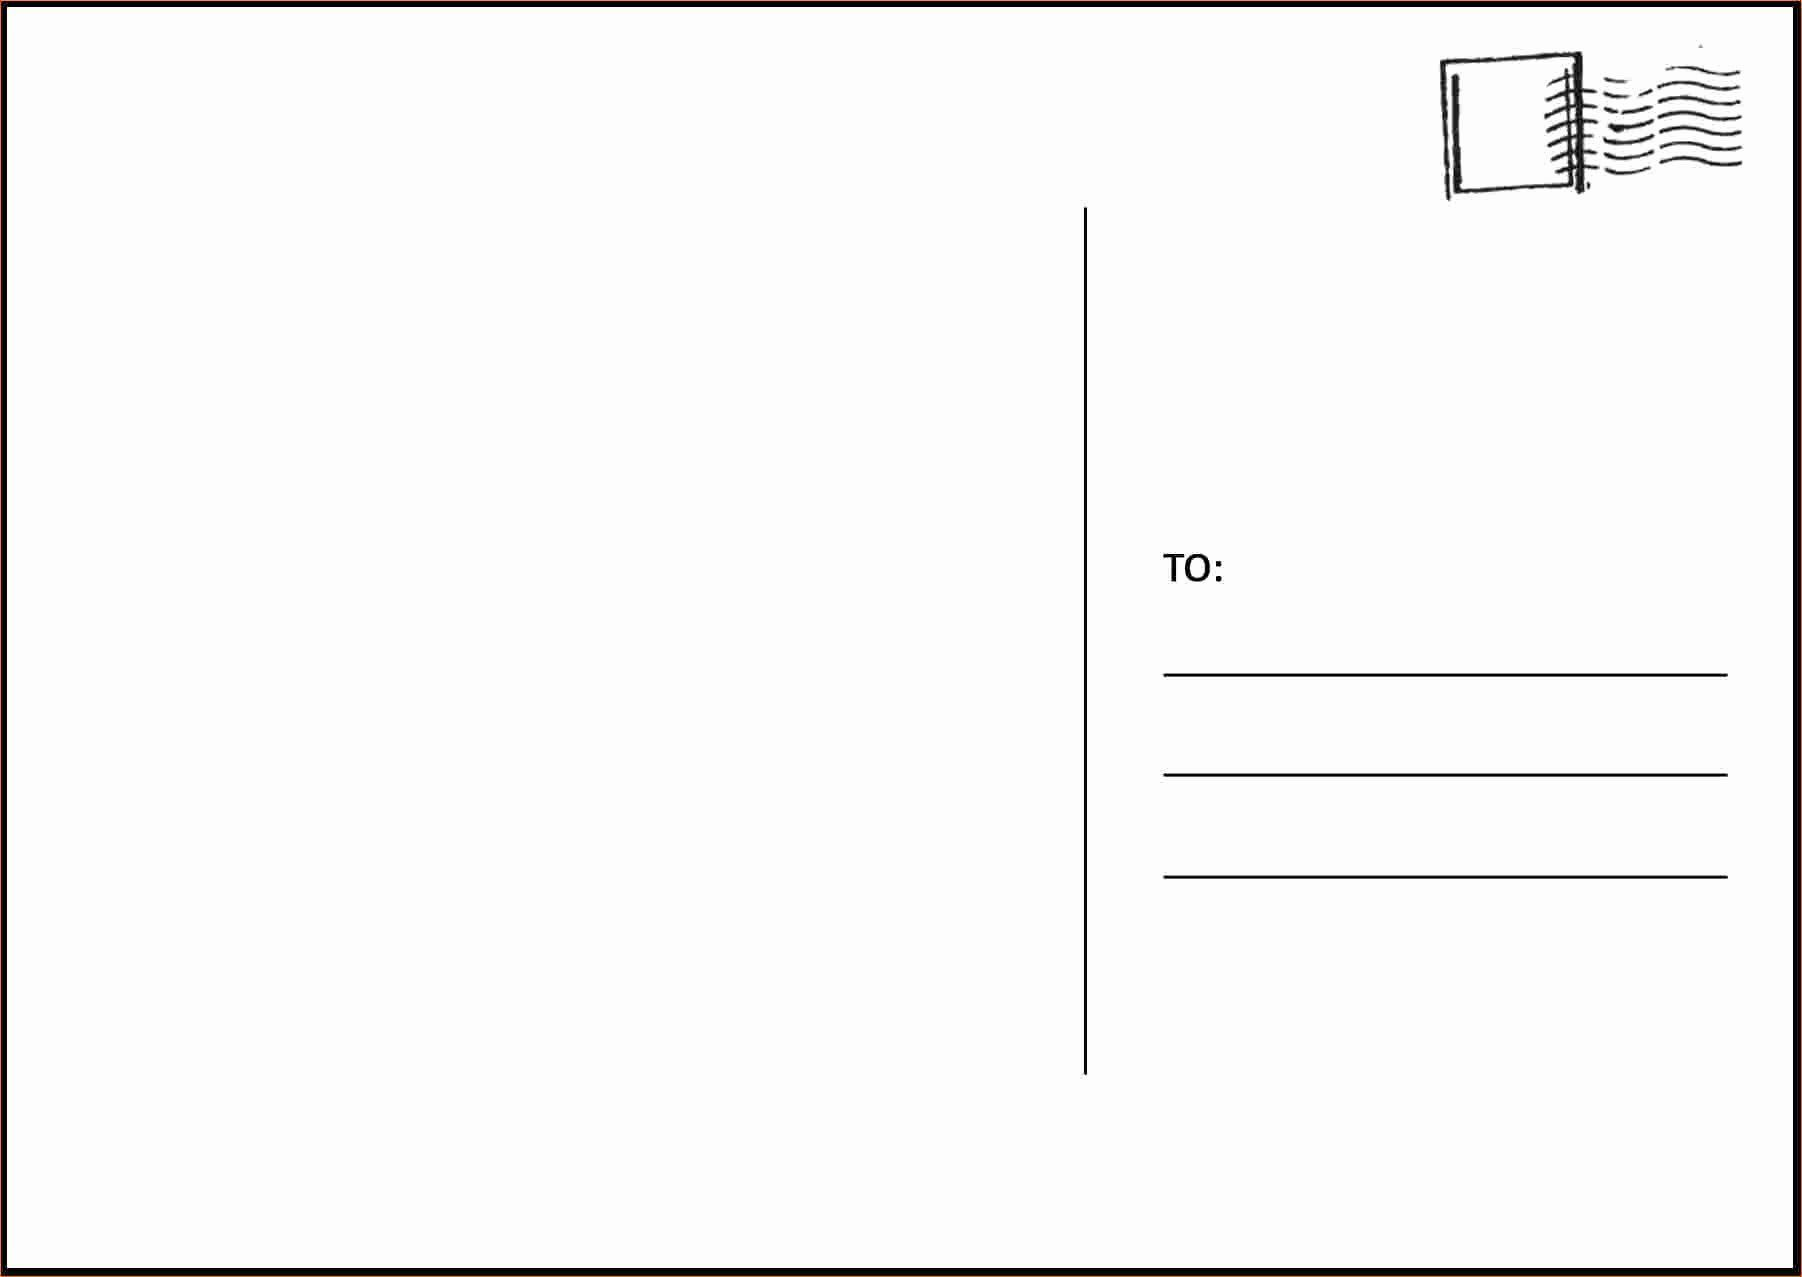 003 Amazing Postcard Layout For Microsoft Word Picture  4 TemplateFull